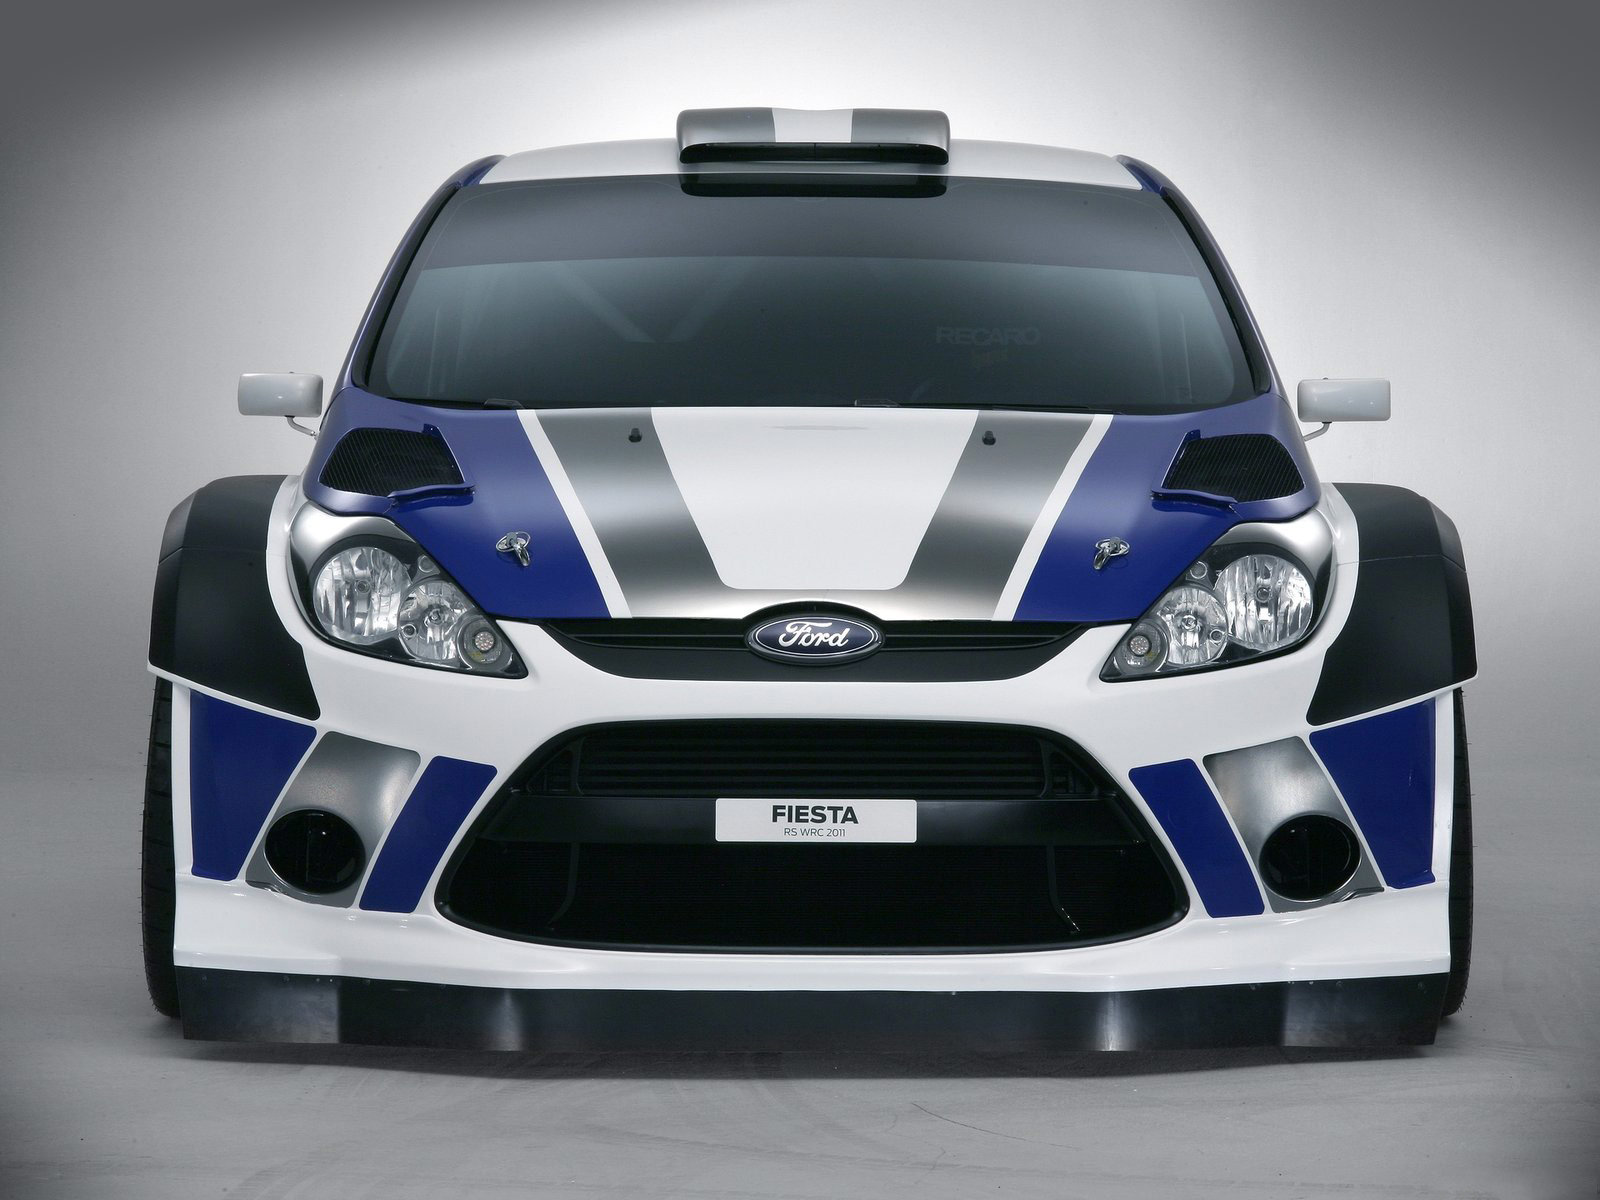 2011 ford fiesta rs wrc car wallpaper accident lawyers. Black Bedroom Furniture Sets. Home Design Ideas